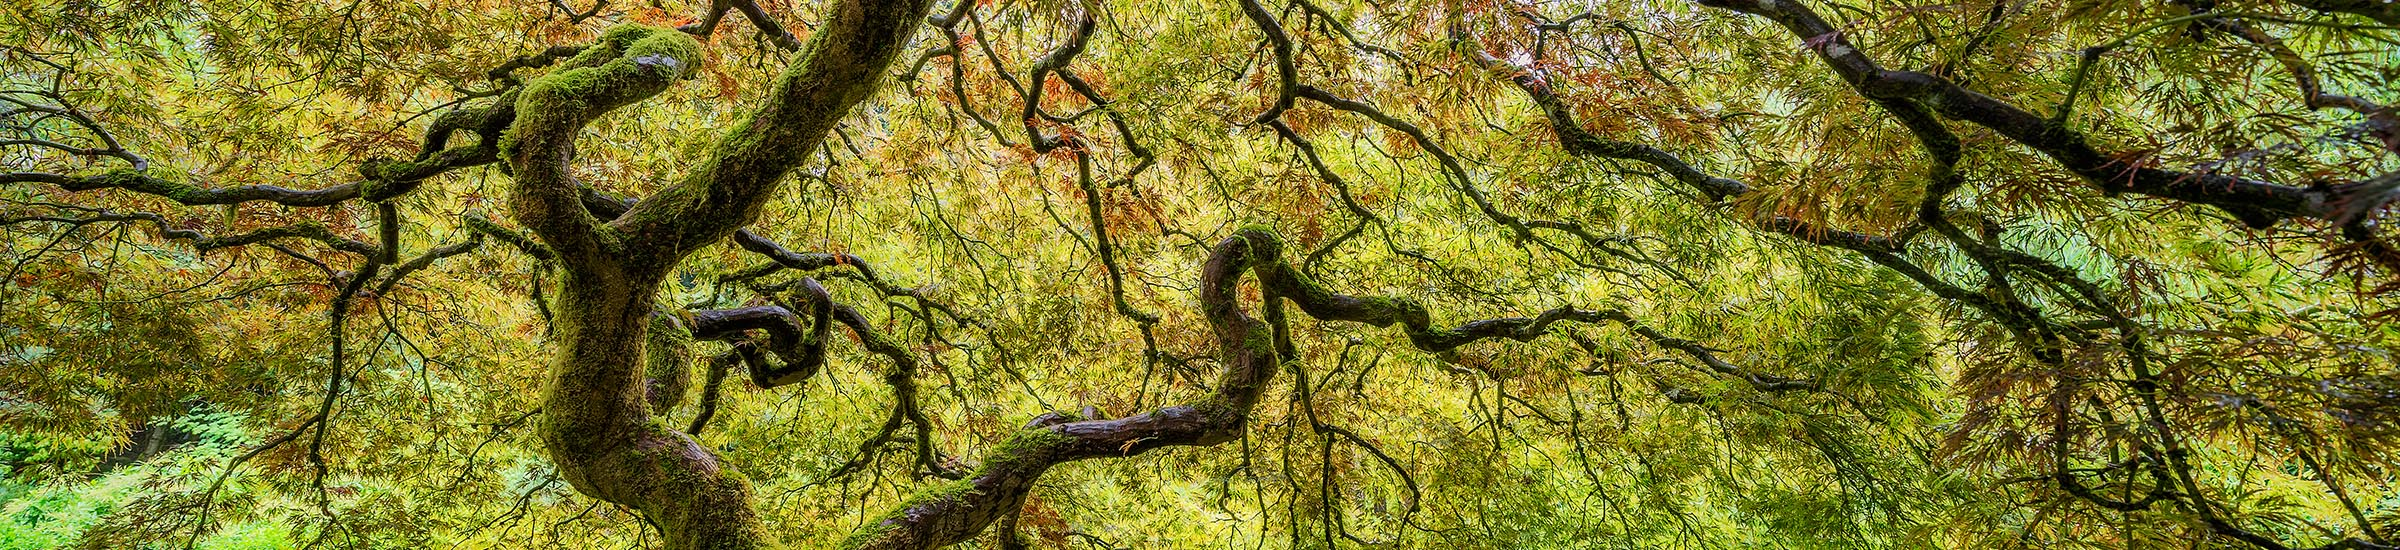 Photograph of Japanese Maple in Portland, Oregon by Brent Goldman Photography